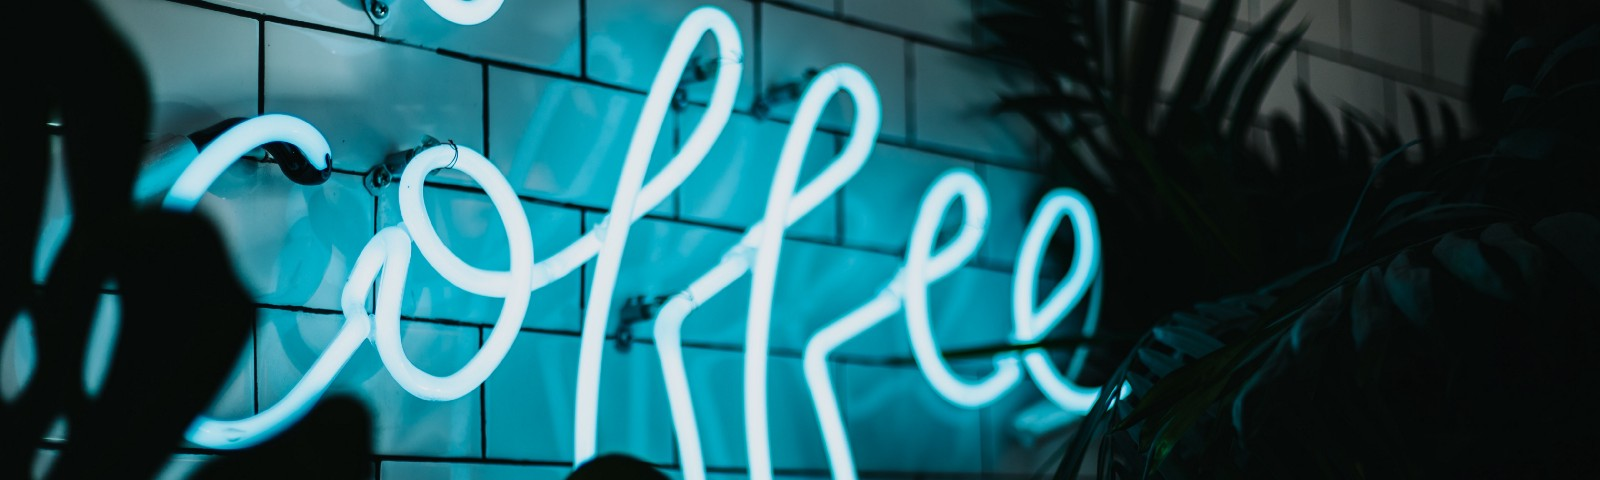 A 'coffee' sign in blue neon lights, partially obscured with silhouettes of greenery.